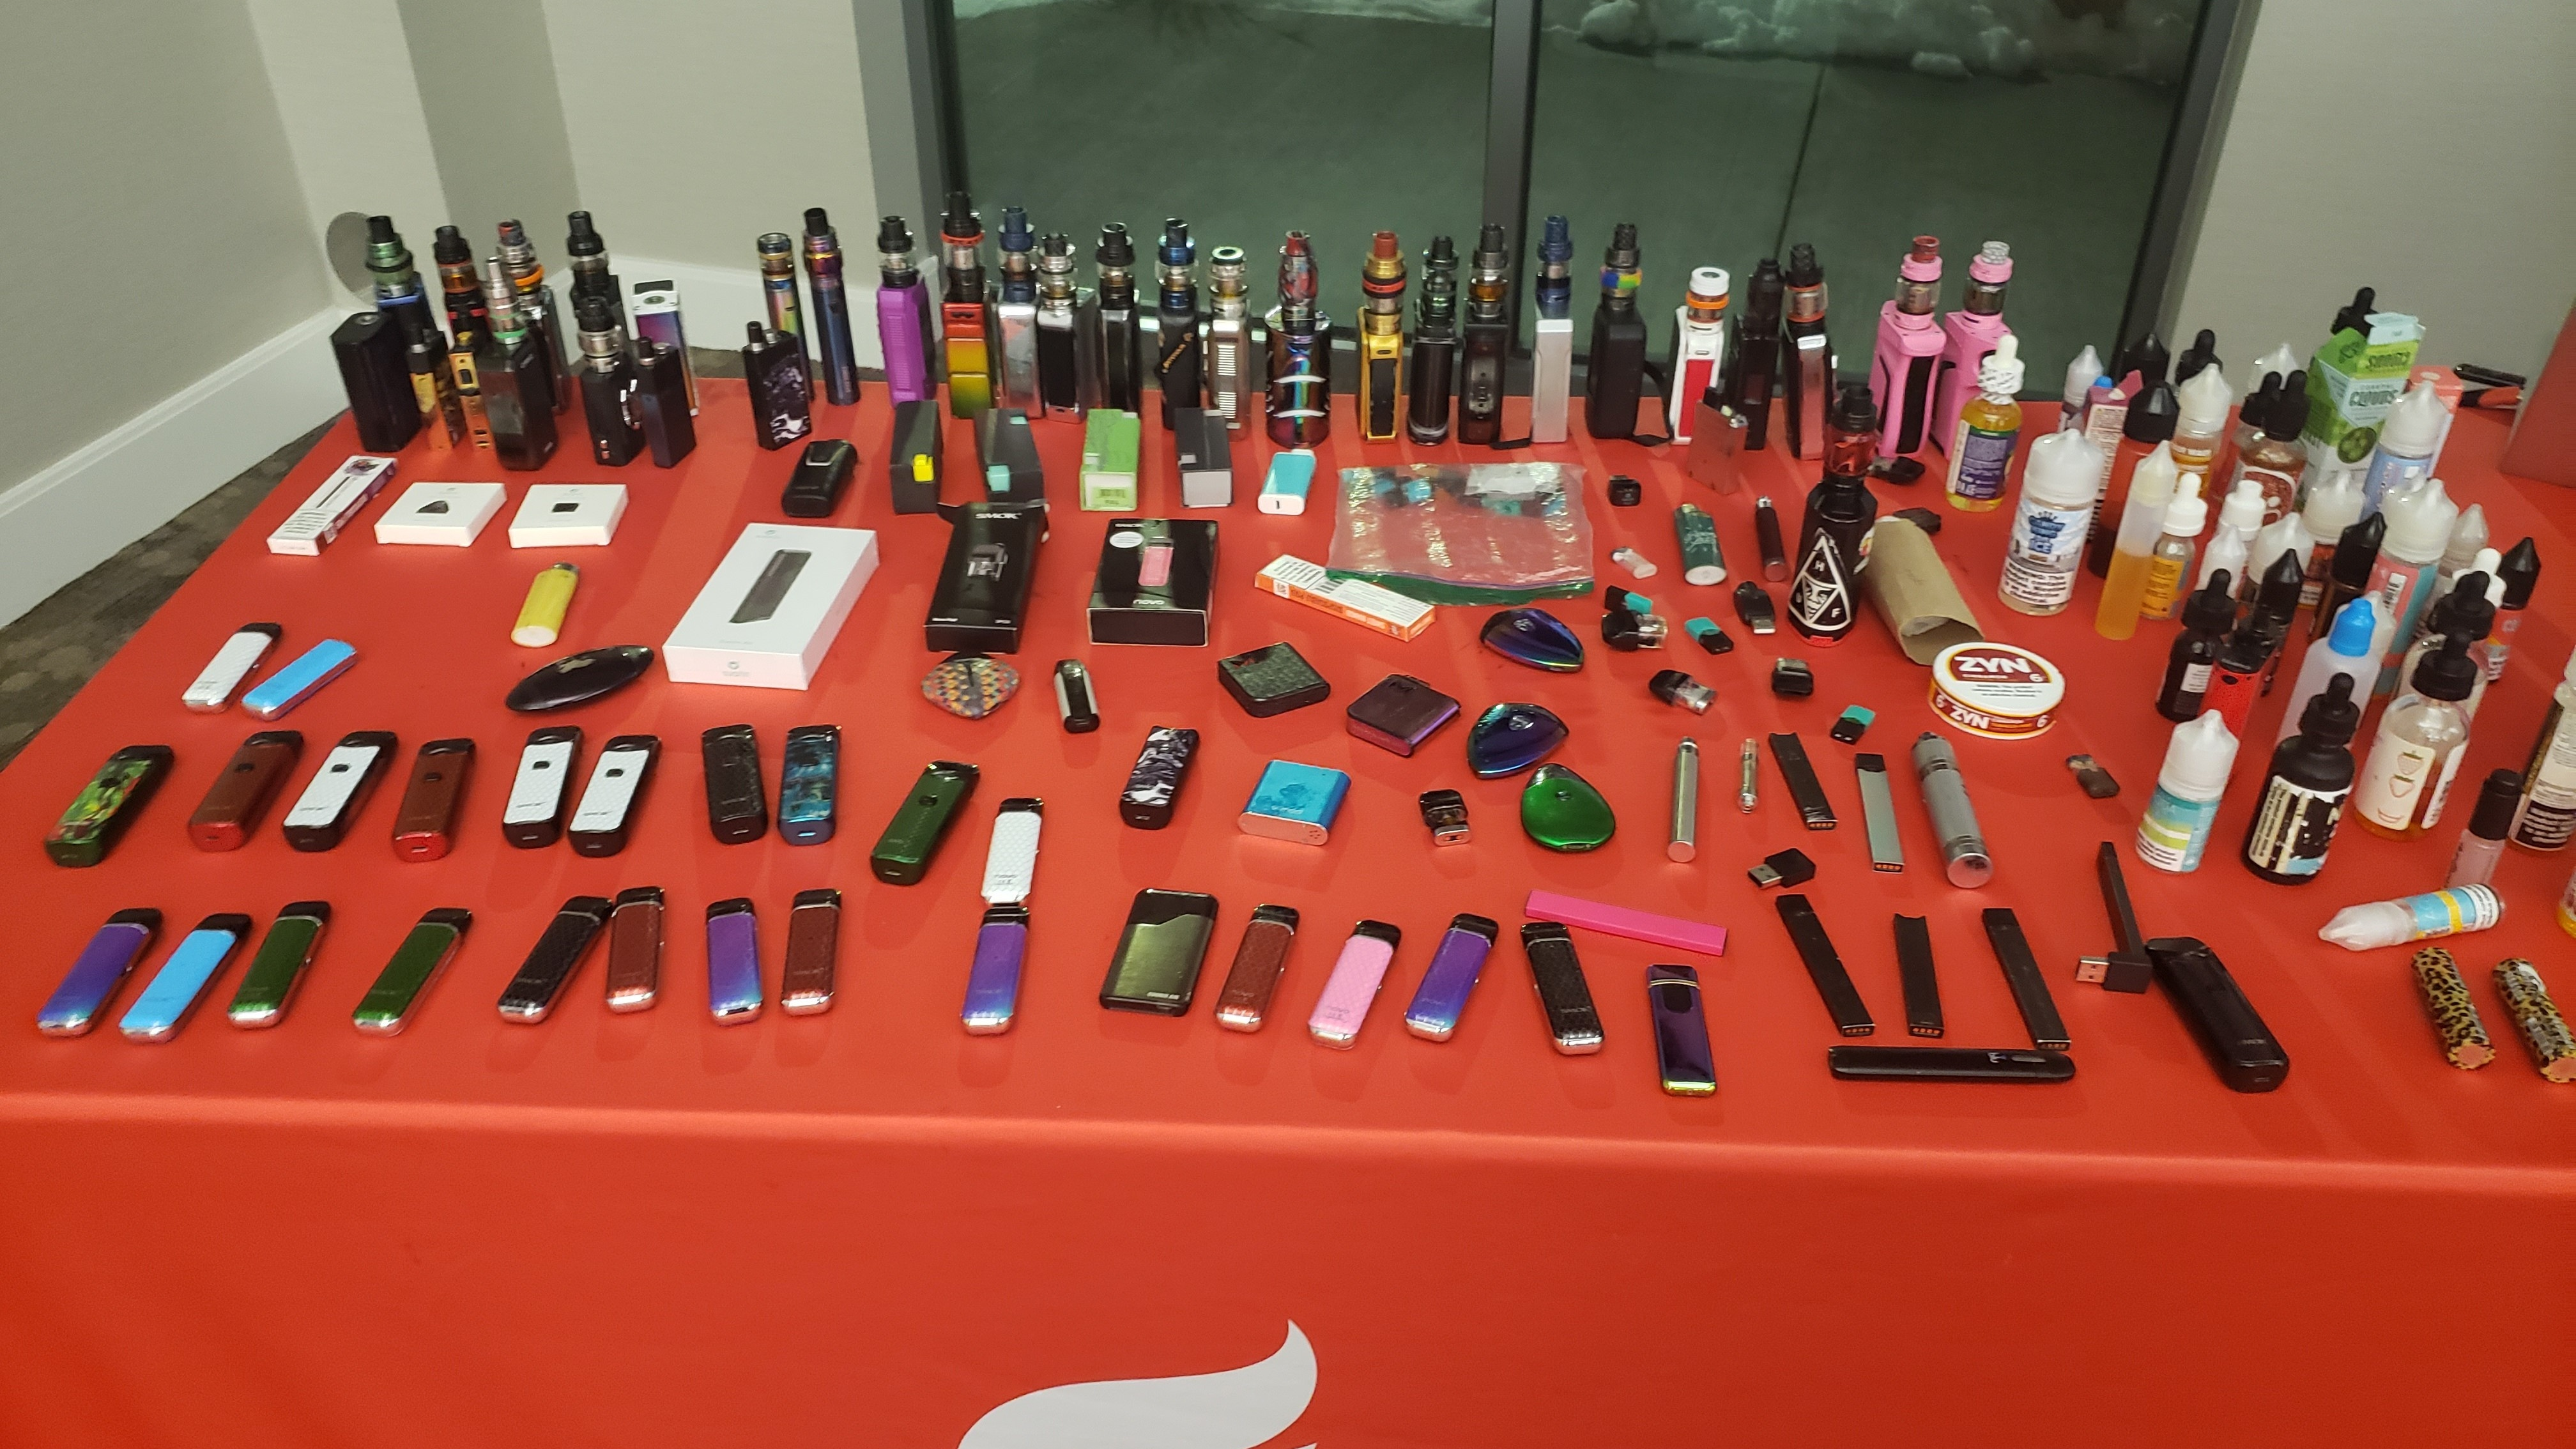 a table full of e-cigarette devices that were confiscated at a Utah high school